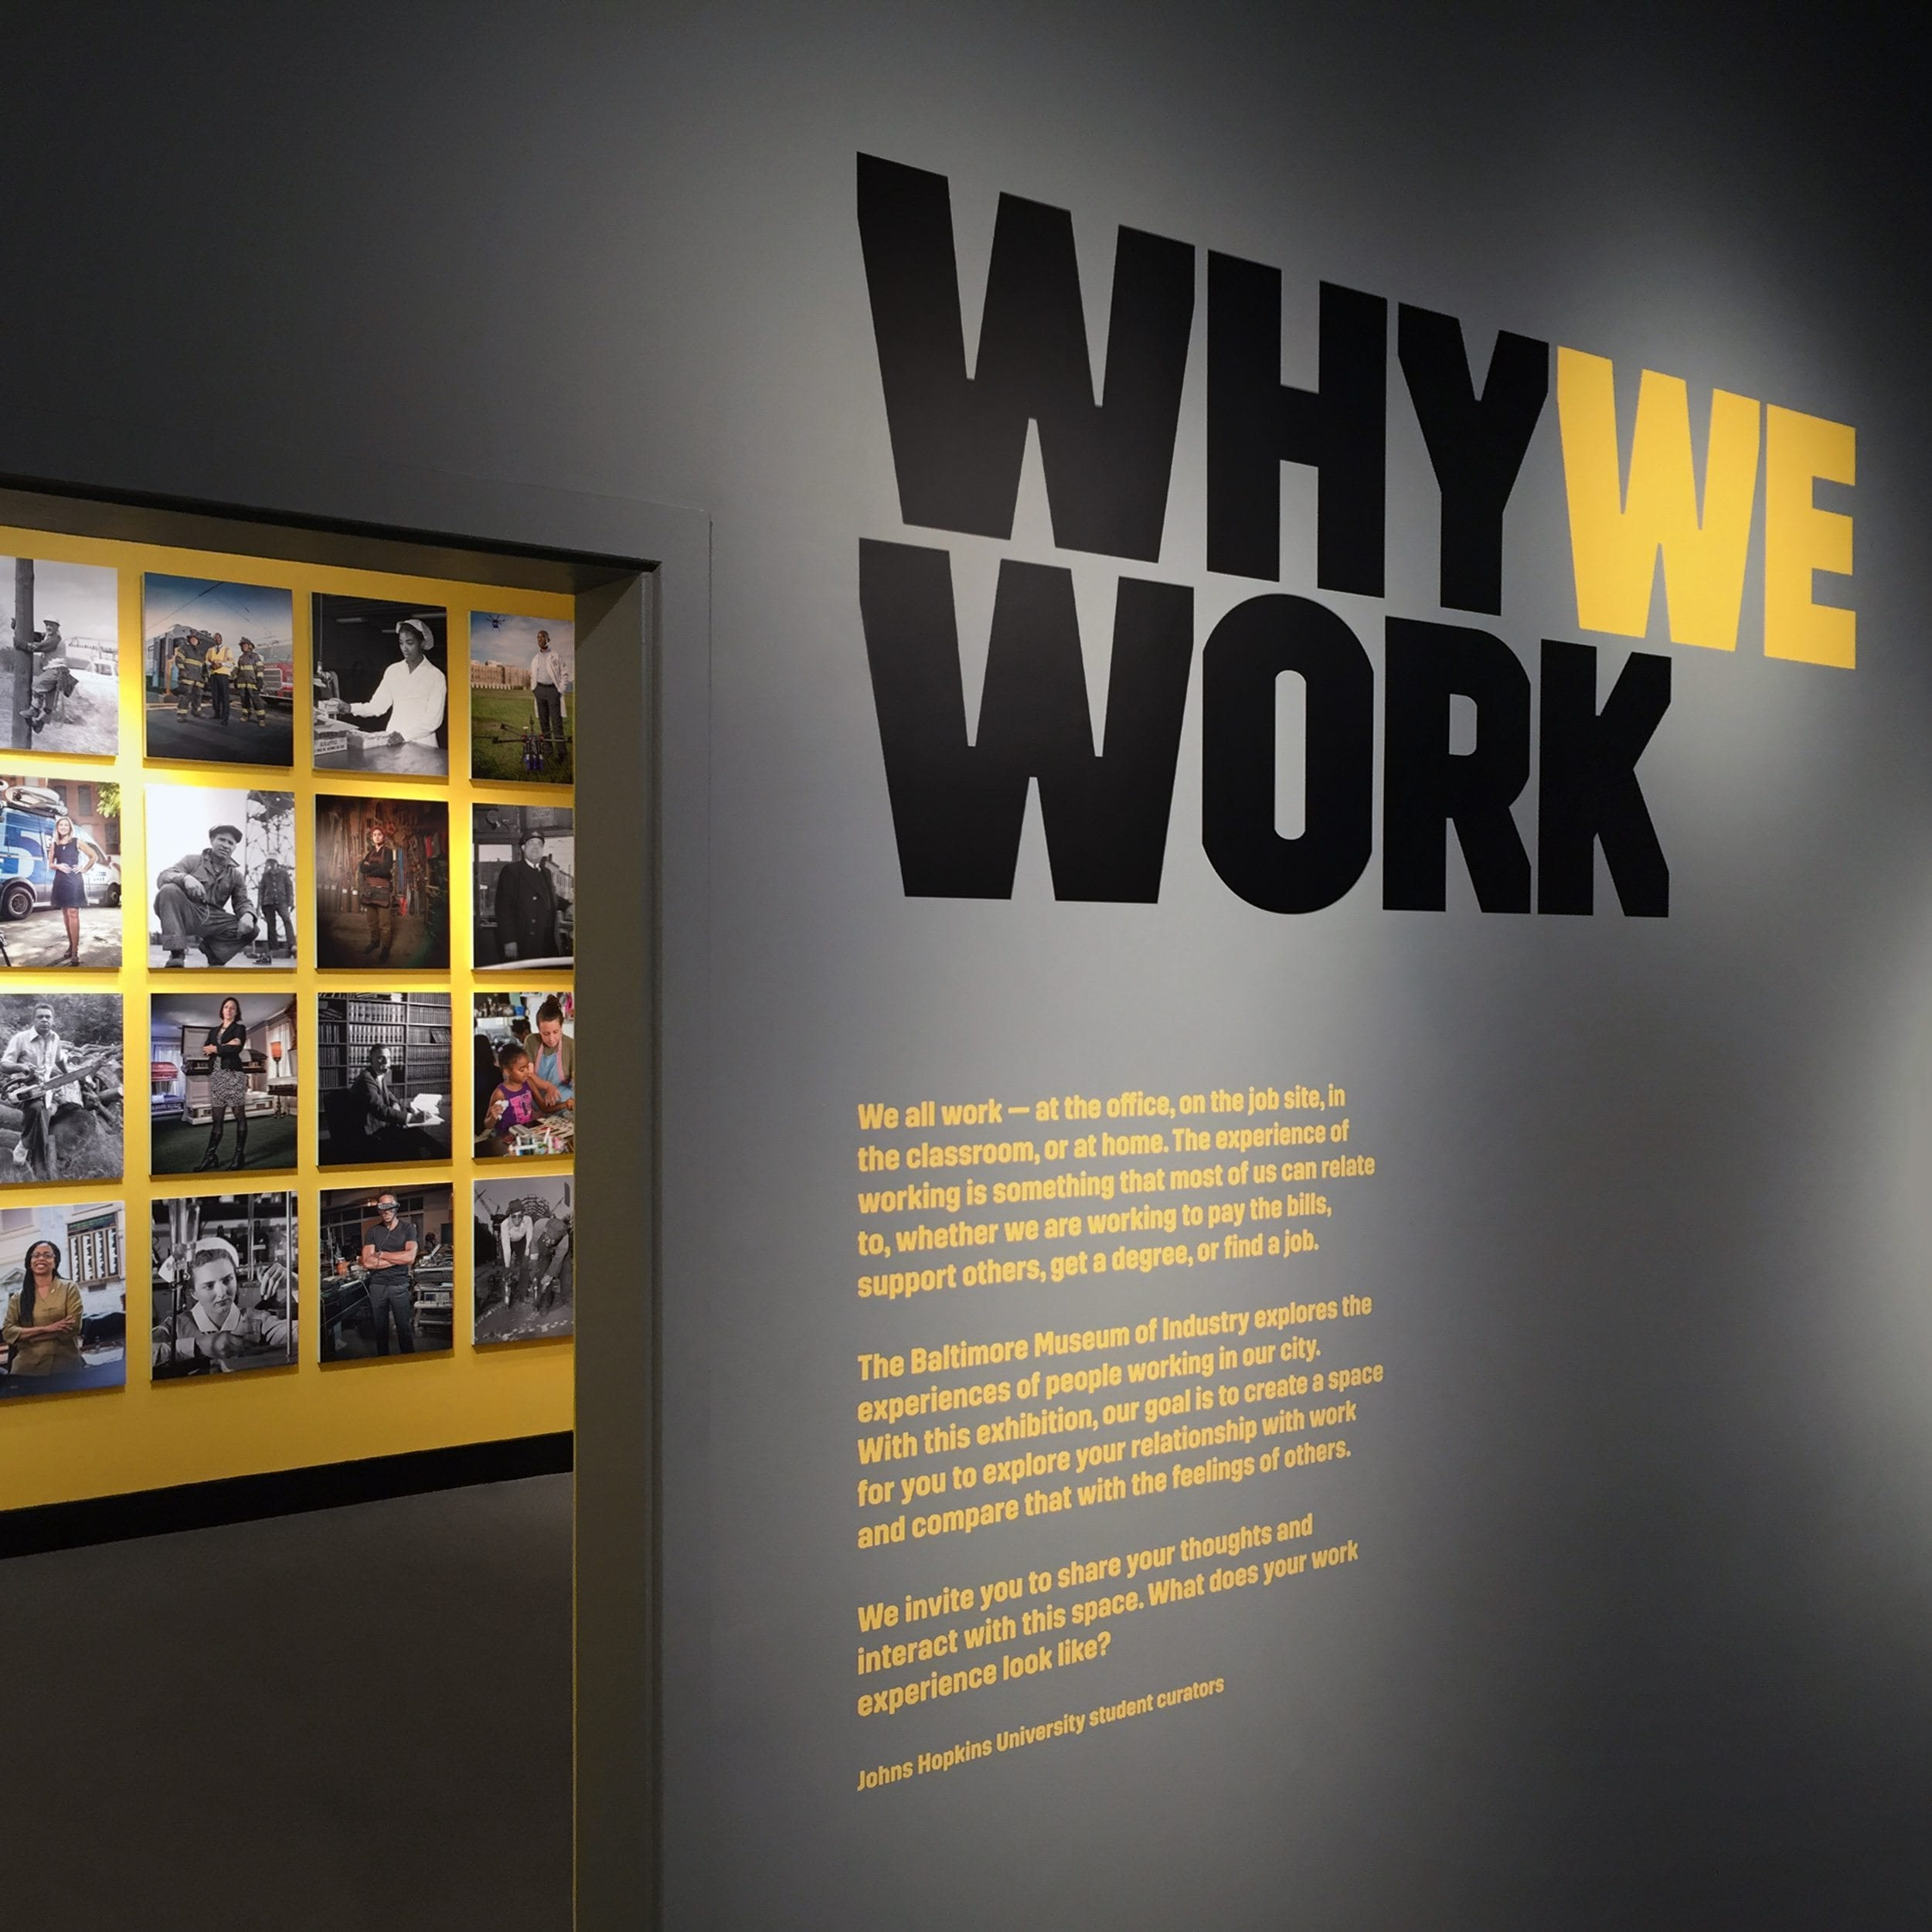 Why We Work opens at the Baltimore Museum of Industry